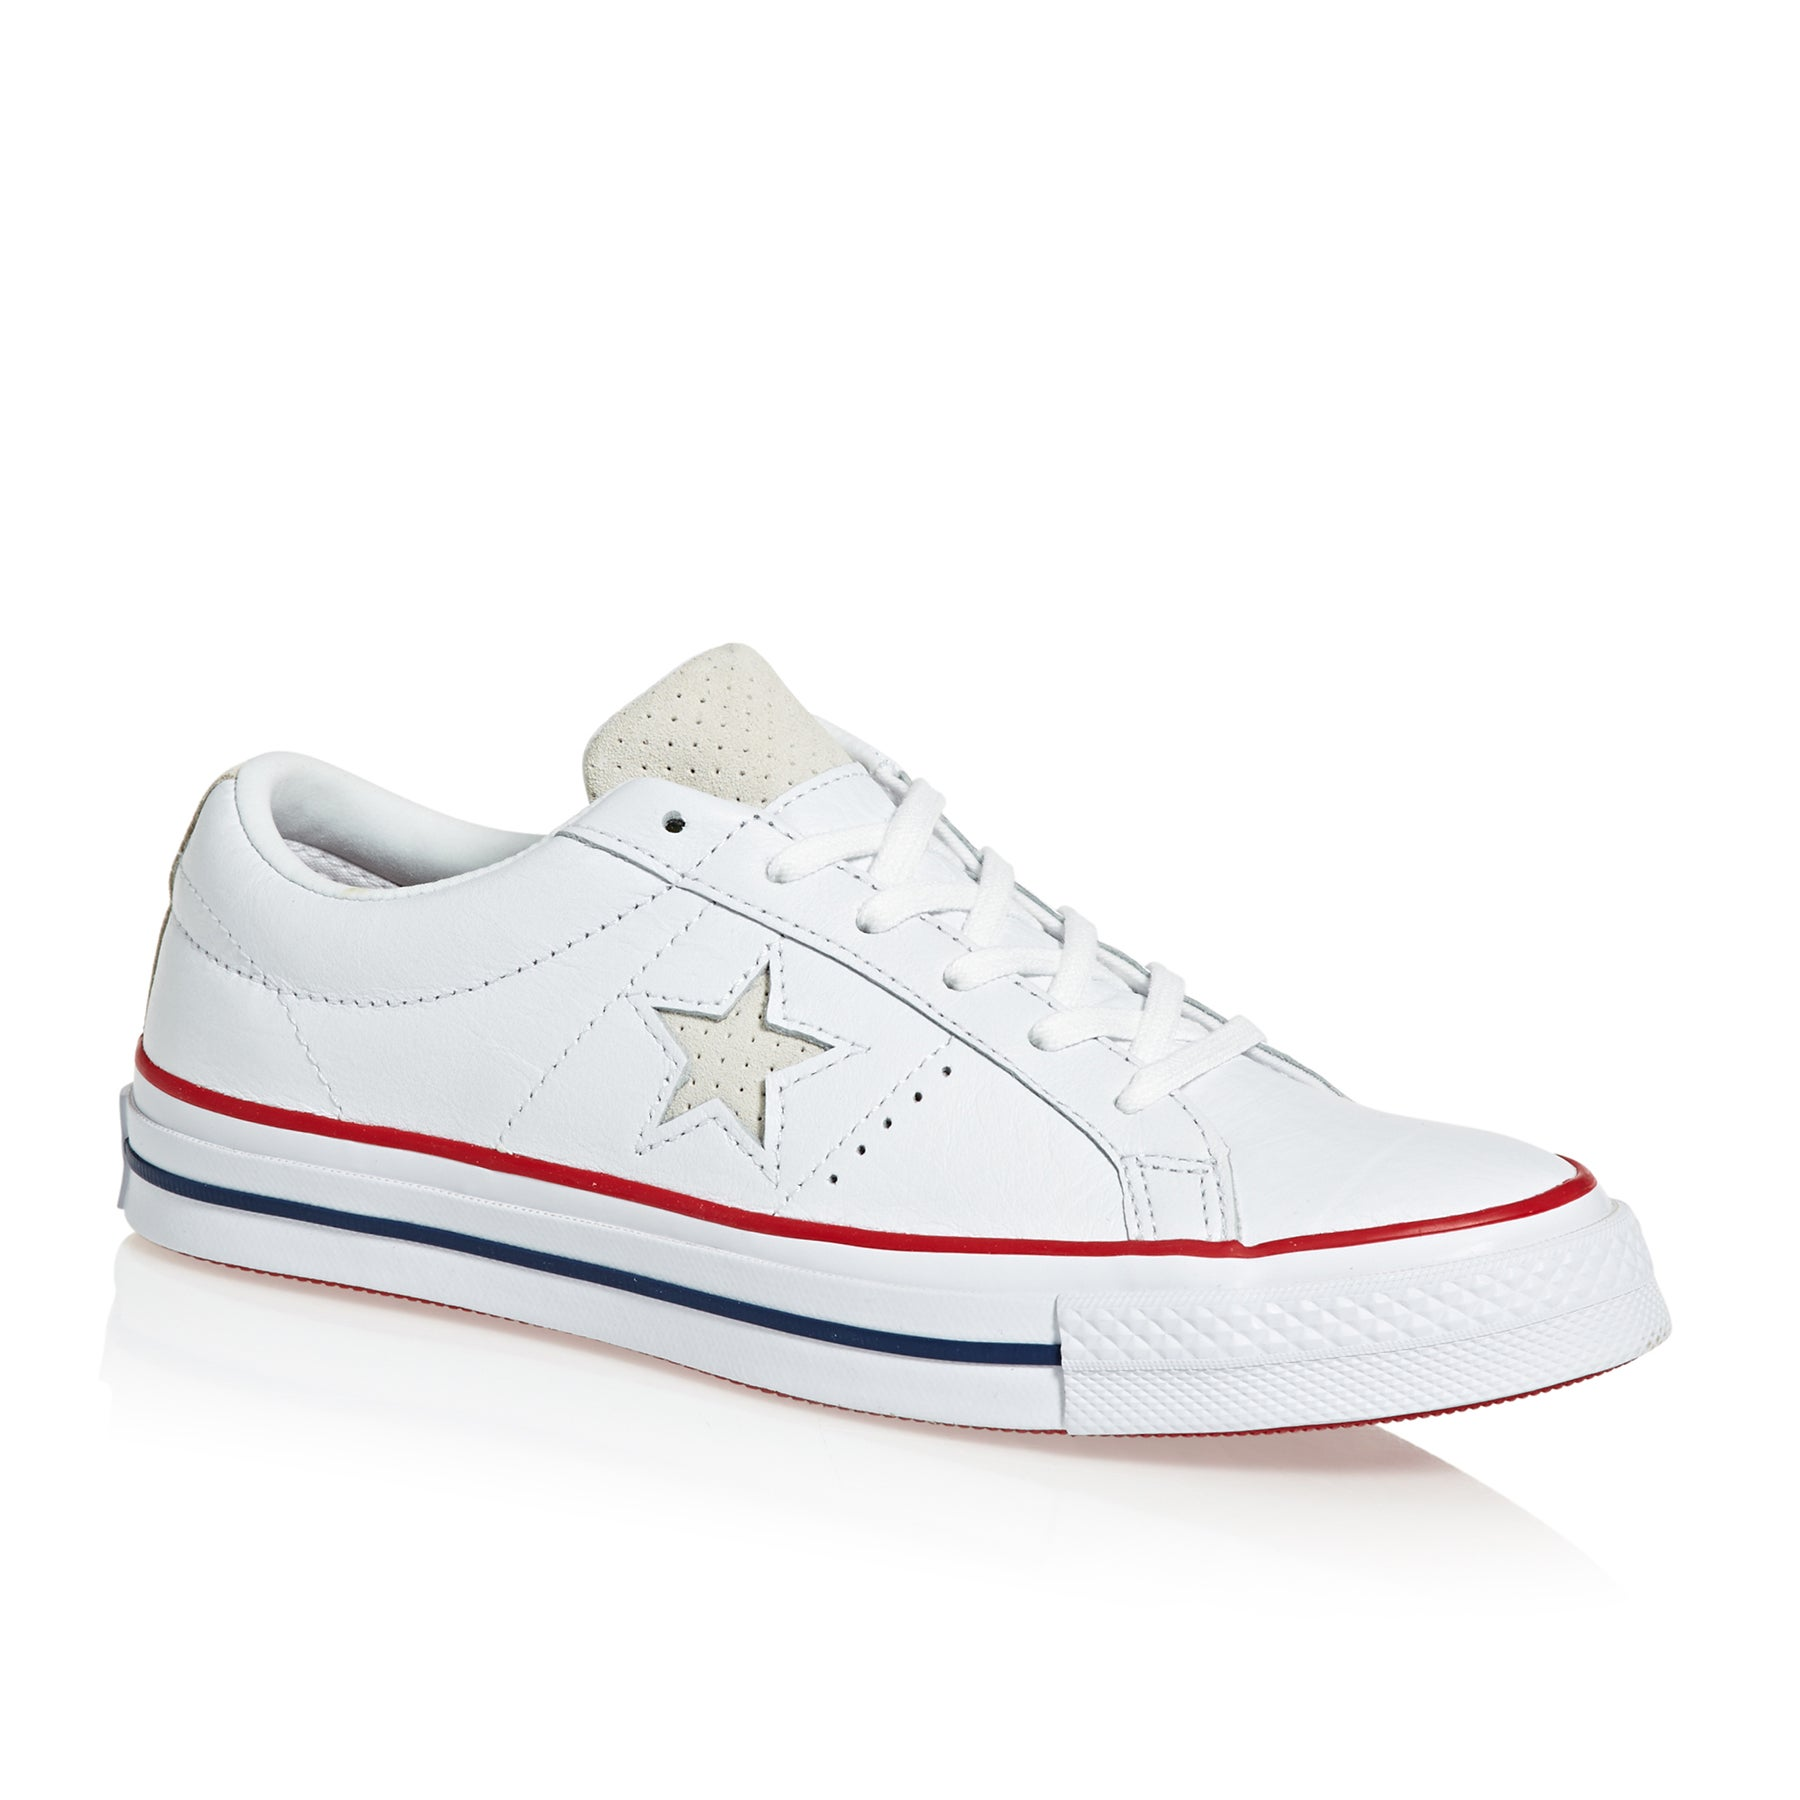 hot sale online 89ab0 e67aa Converse One Star Ox Shoes